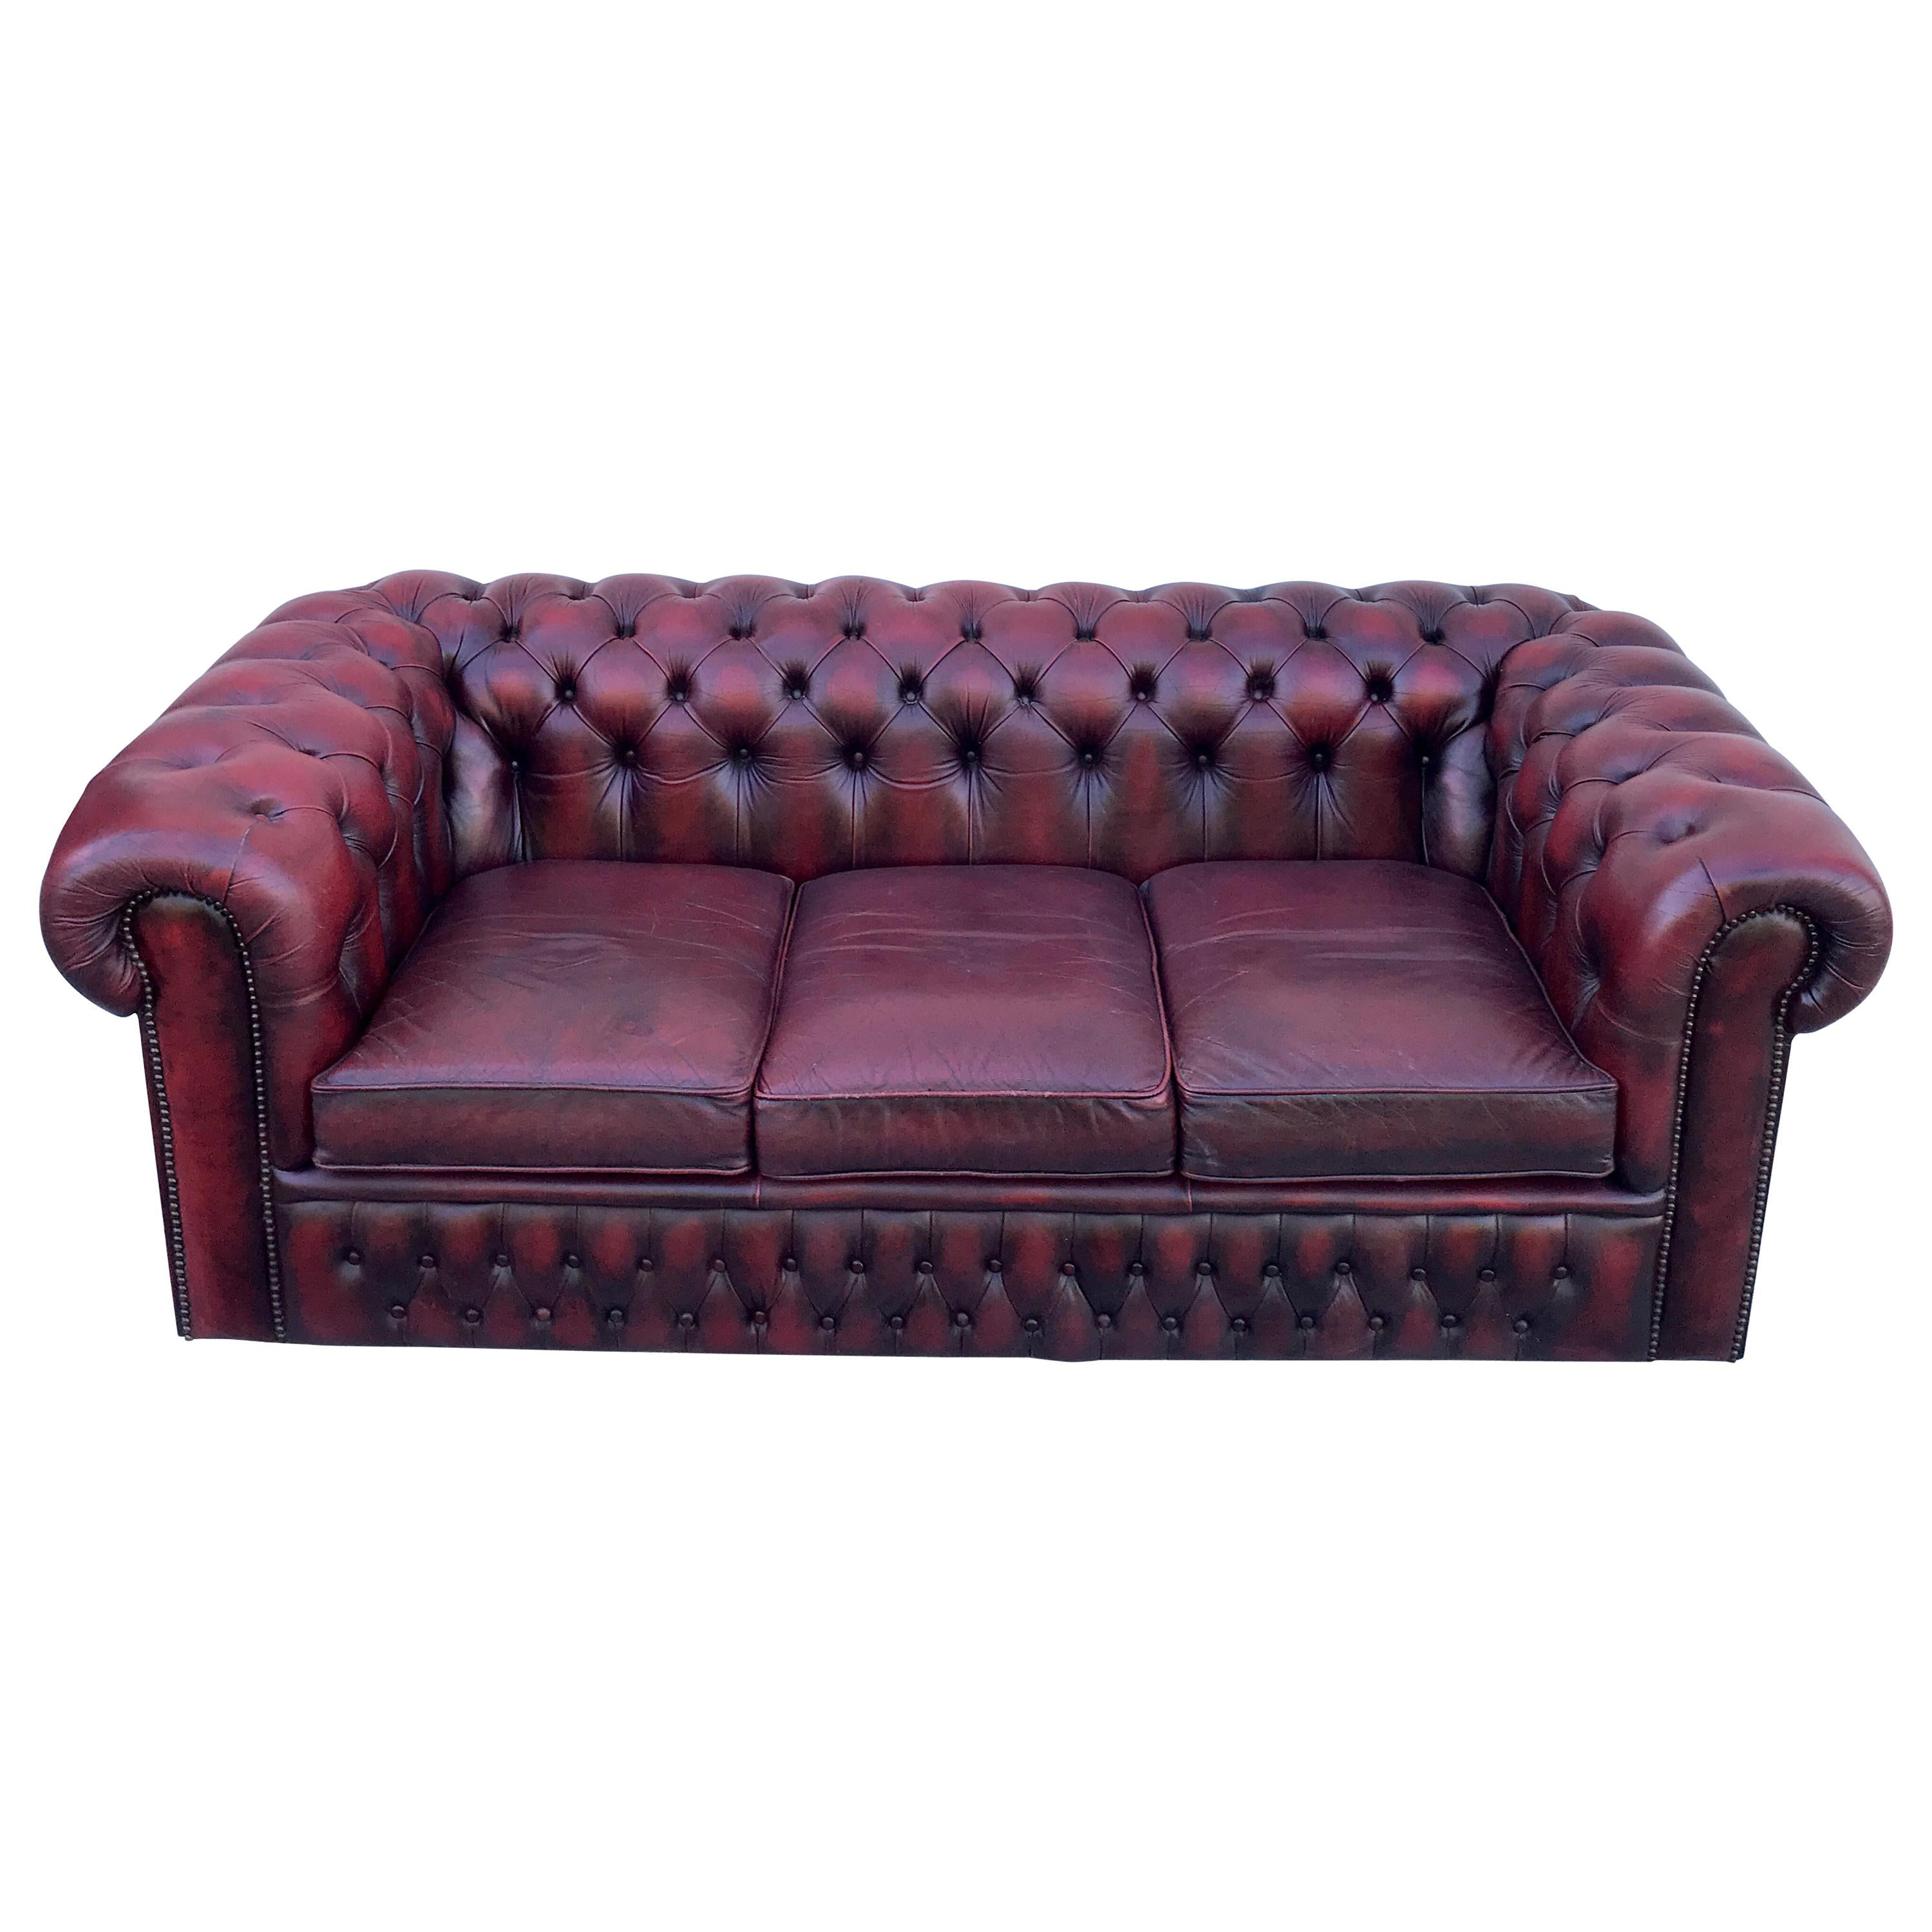 Chesterfield Lounge Sessel Chesterfield Furniture 115 For Sale At 1stdibs